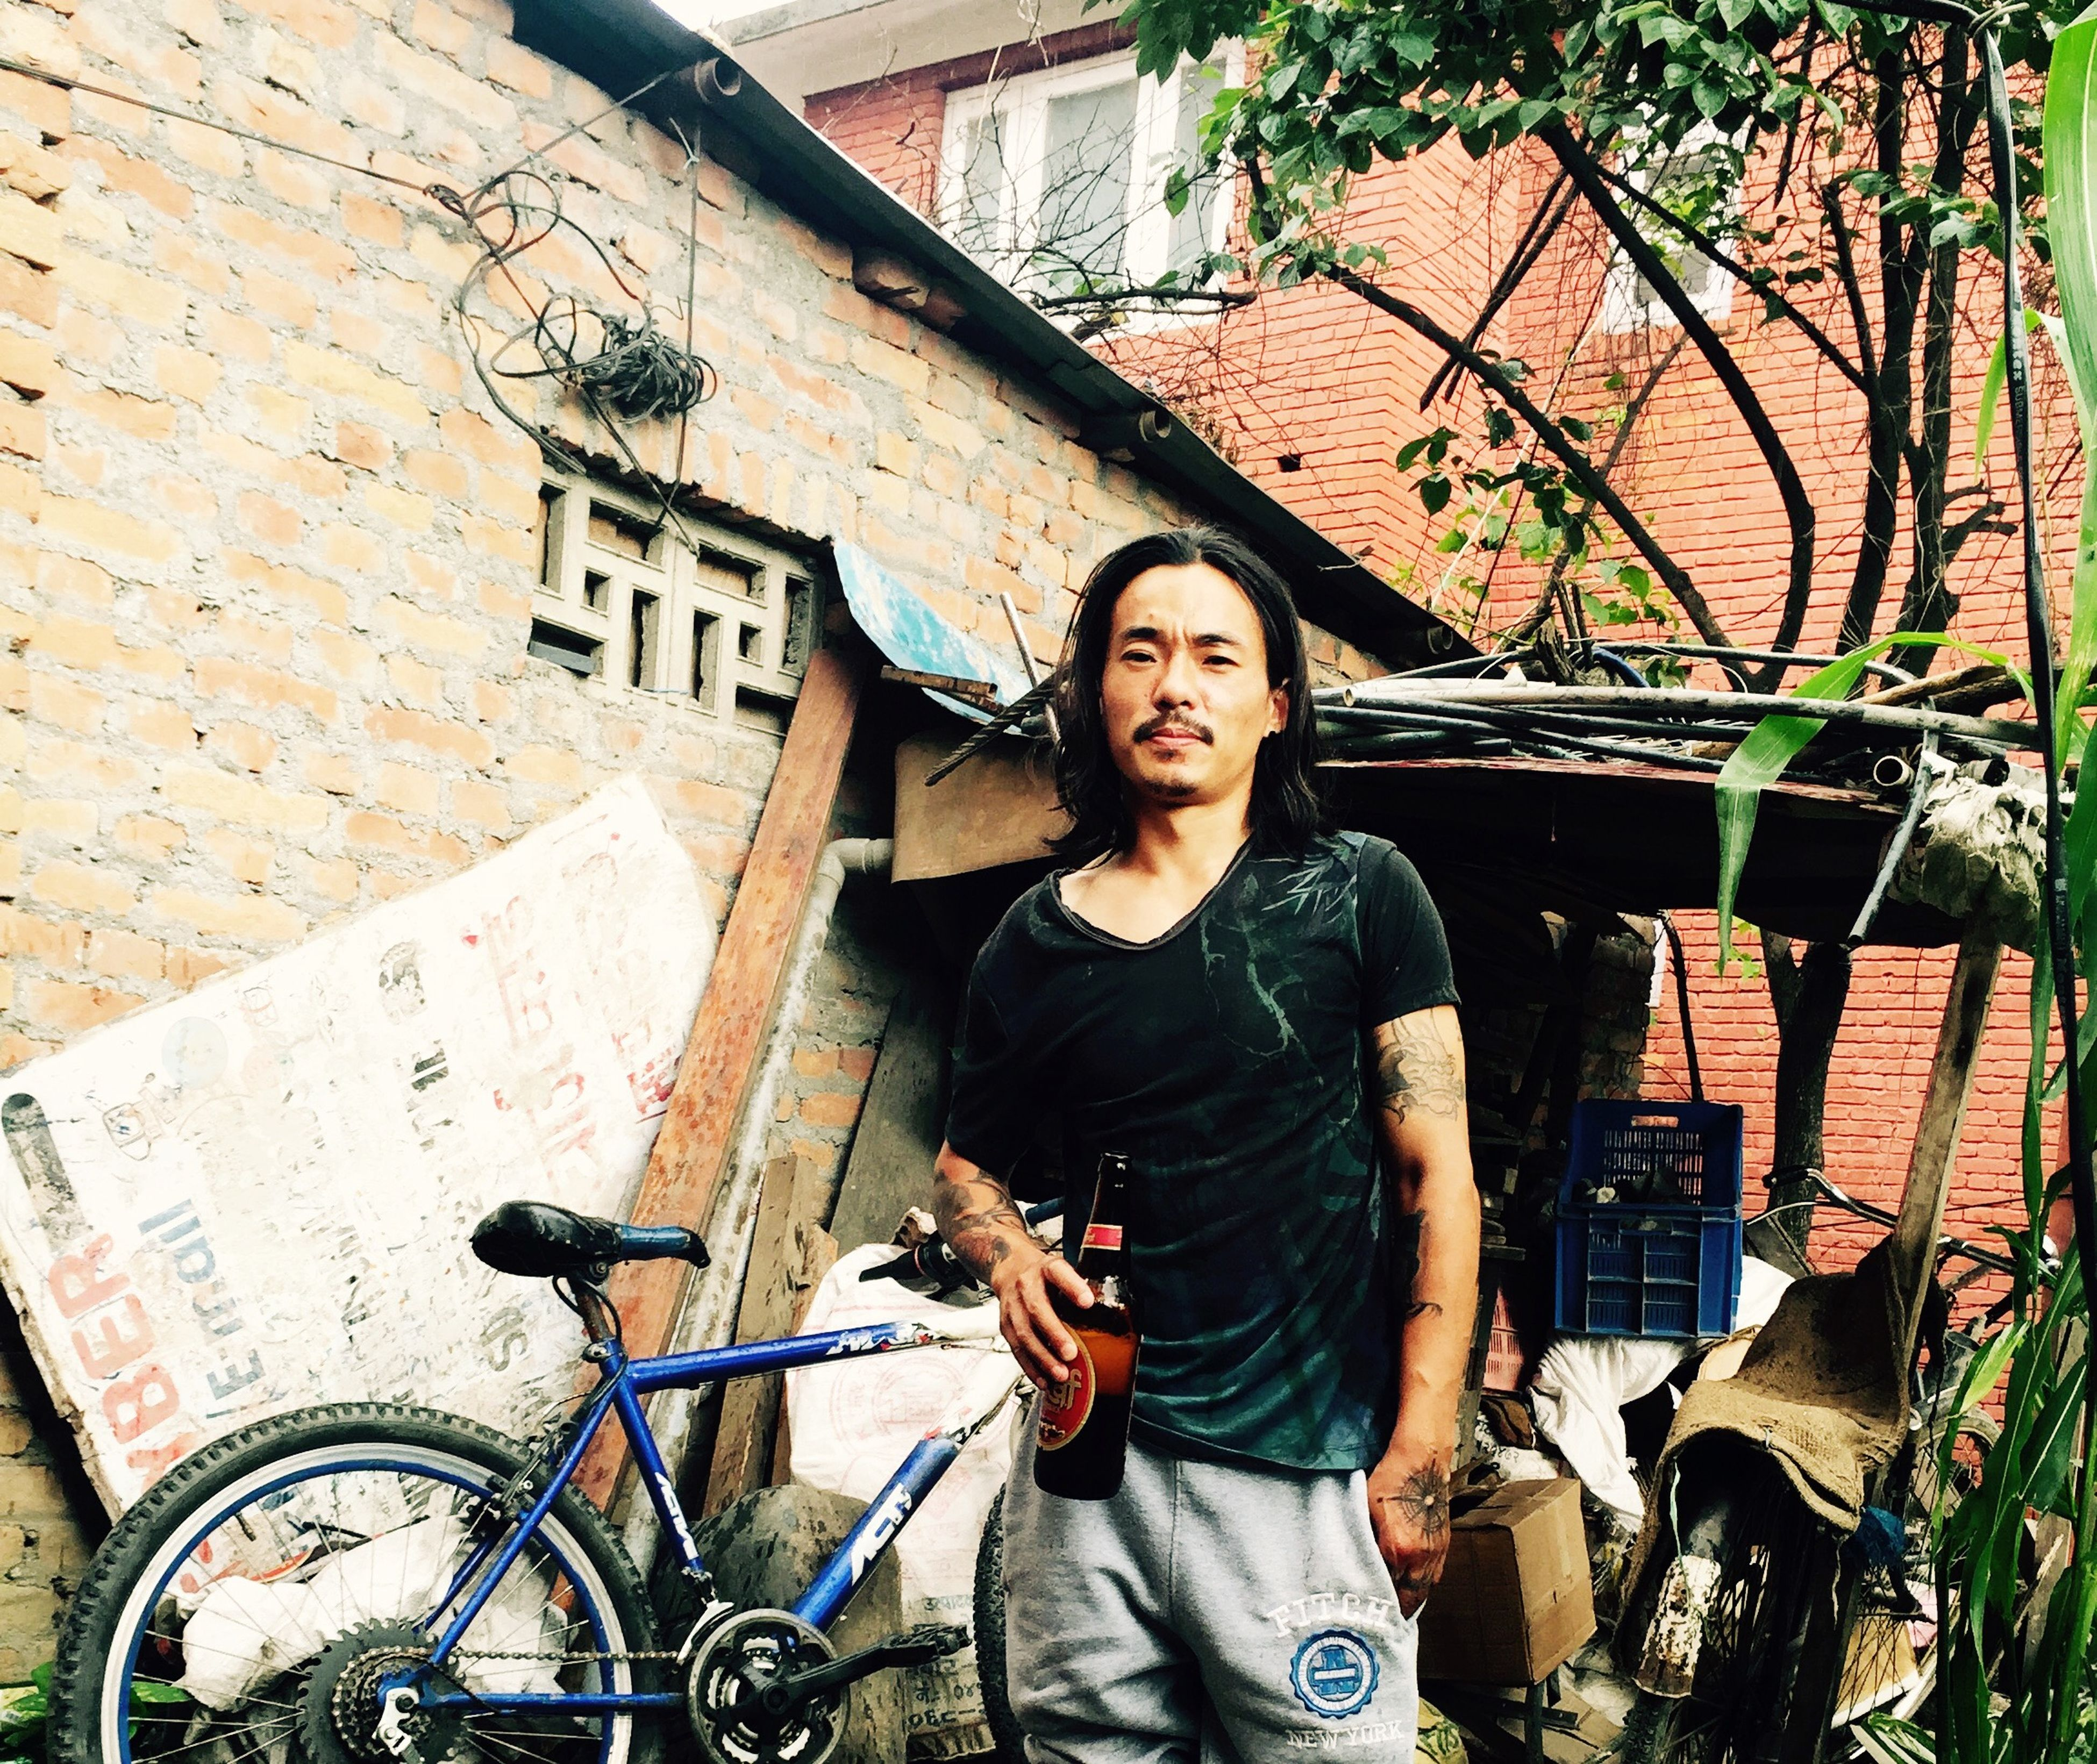 lifestyles, young adult, person, leisure activity, casual clothing, looking at camera, portrait, building exterior, architecture, young men, built structure, smiling, standing, three quarter length, waist up, front view, bicycle